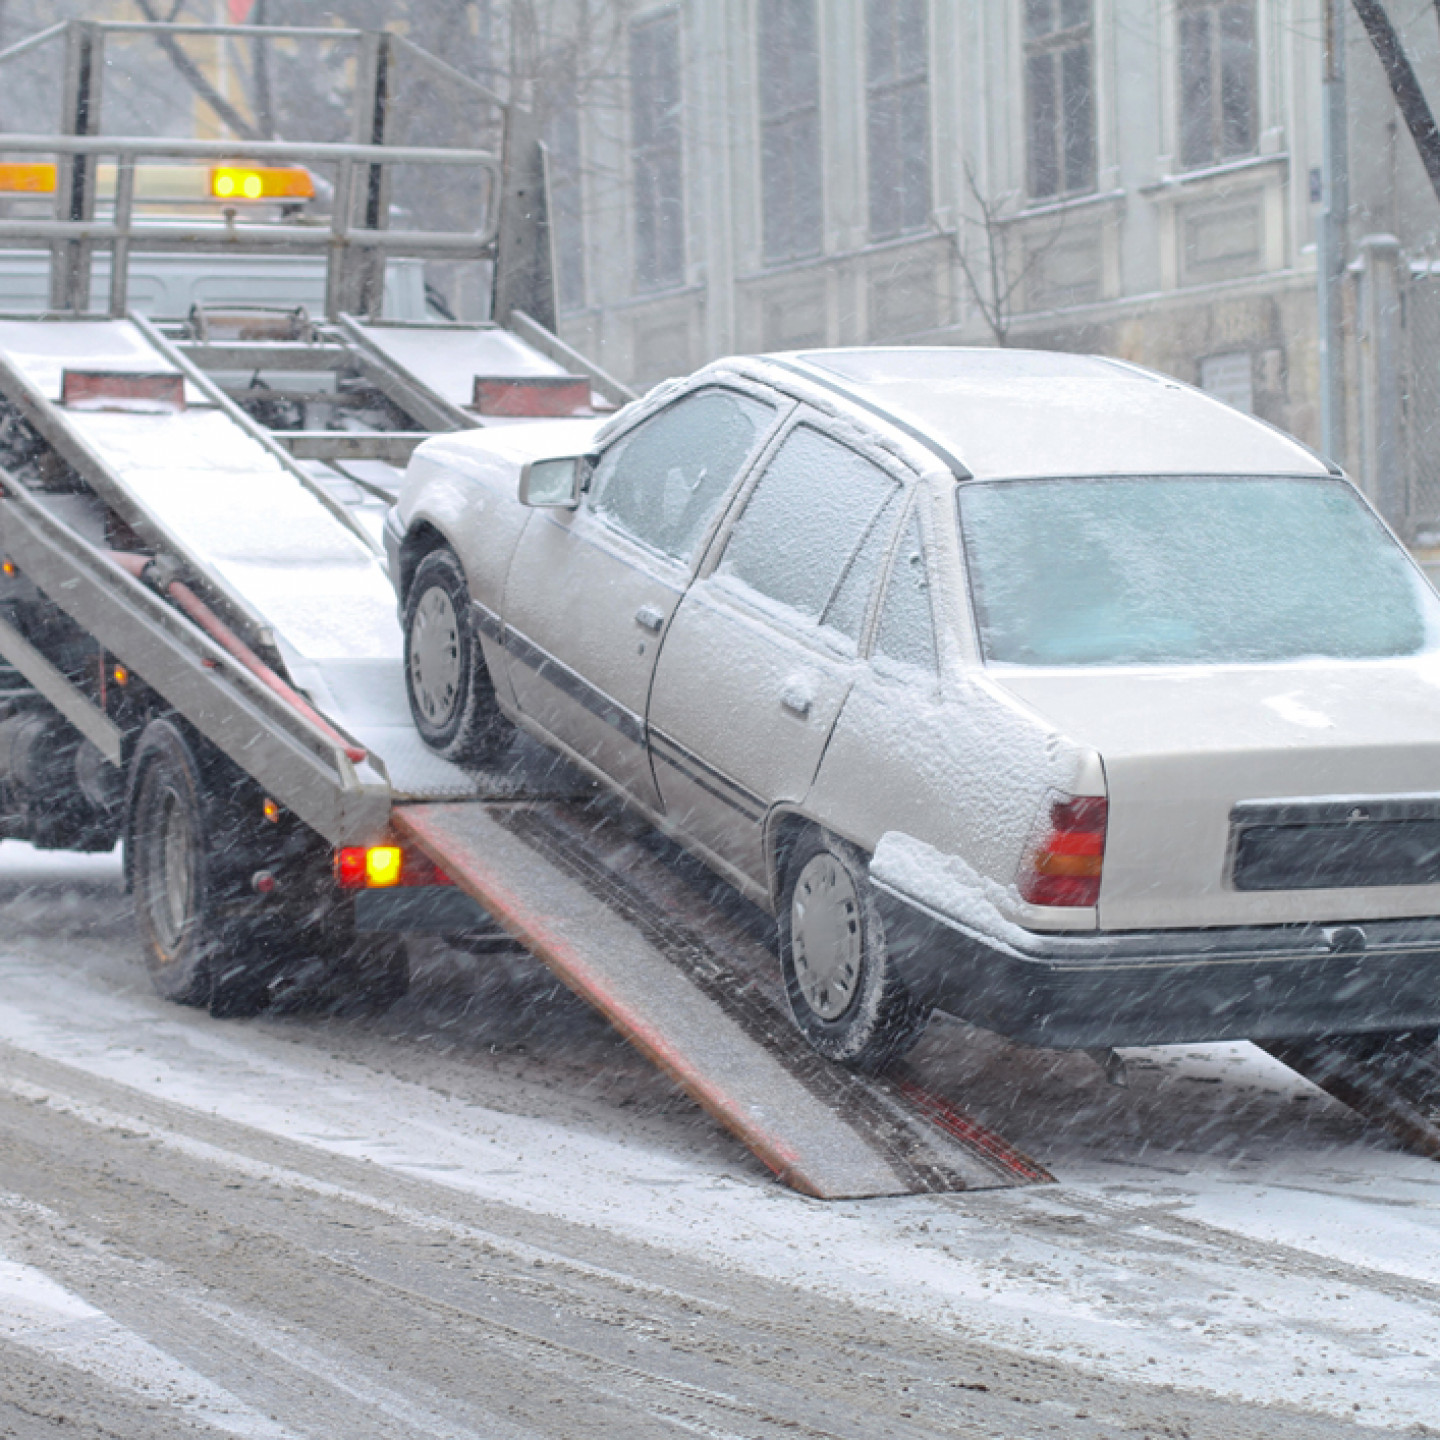 Was your winter weather accident preventable?